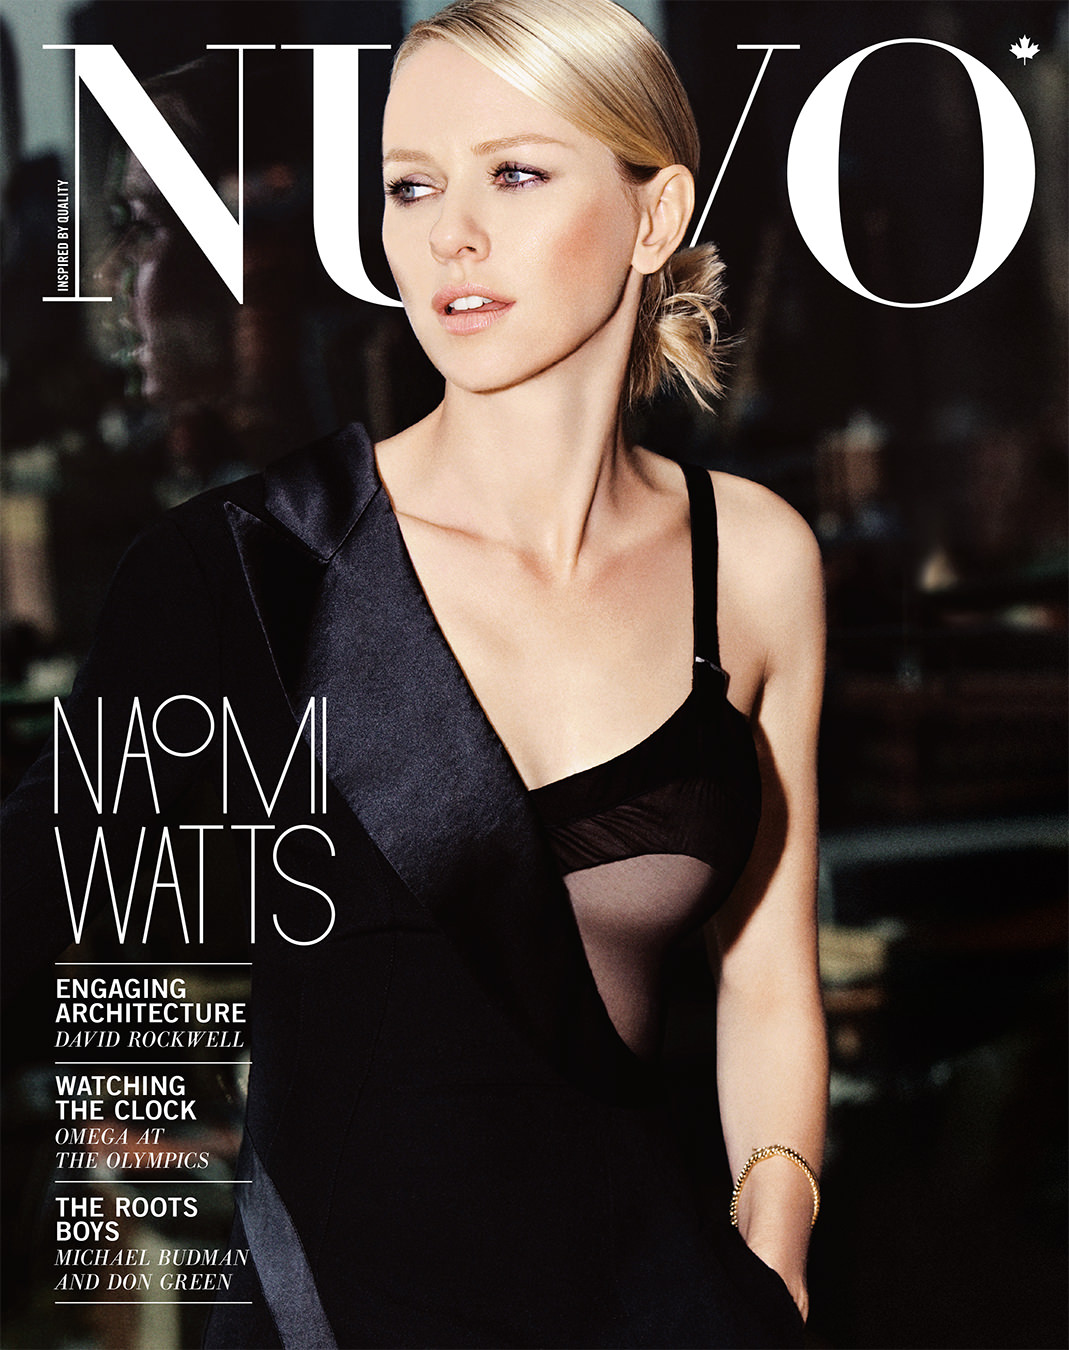 NUVO Magazine Winter 2009 Cover featuring Naomi Watts